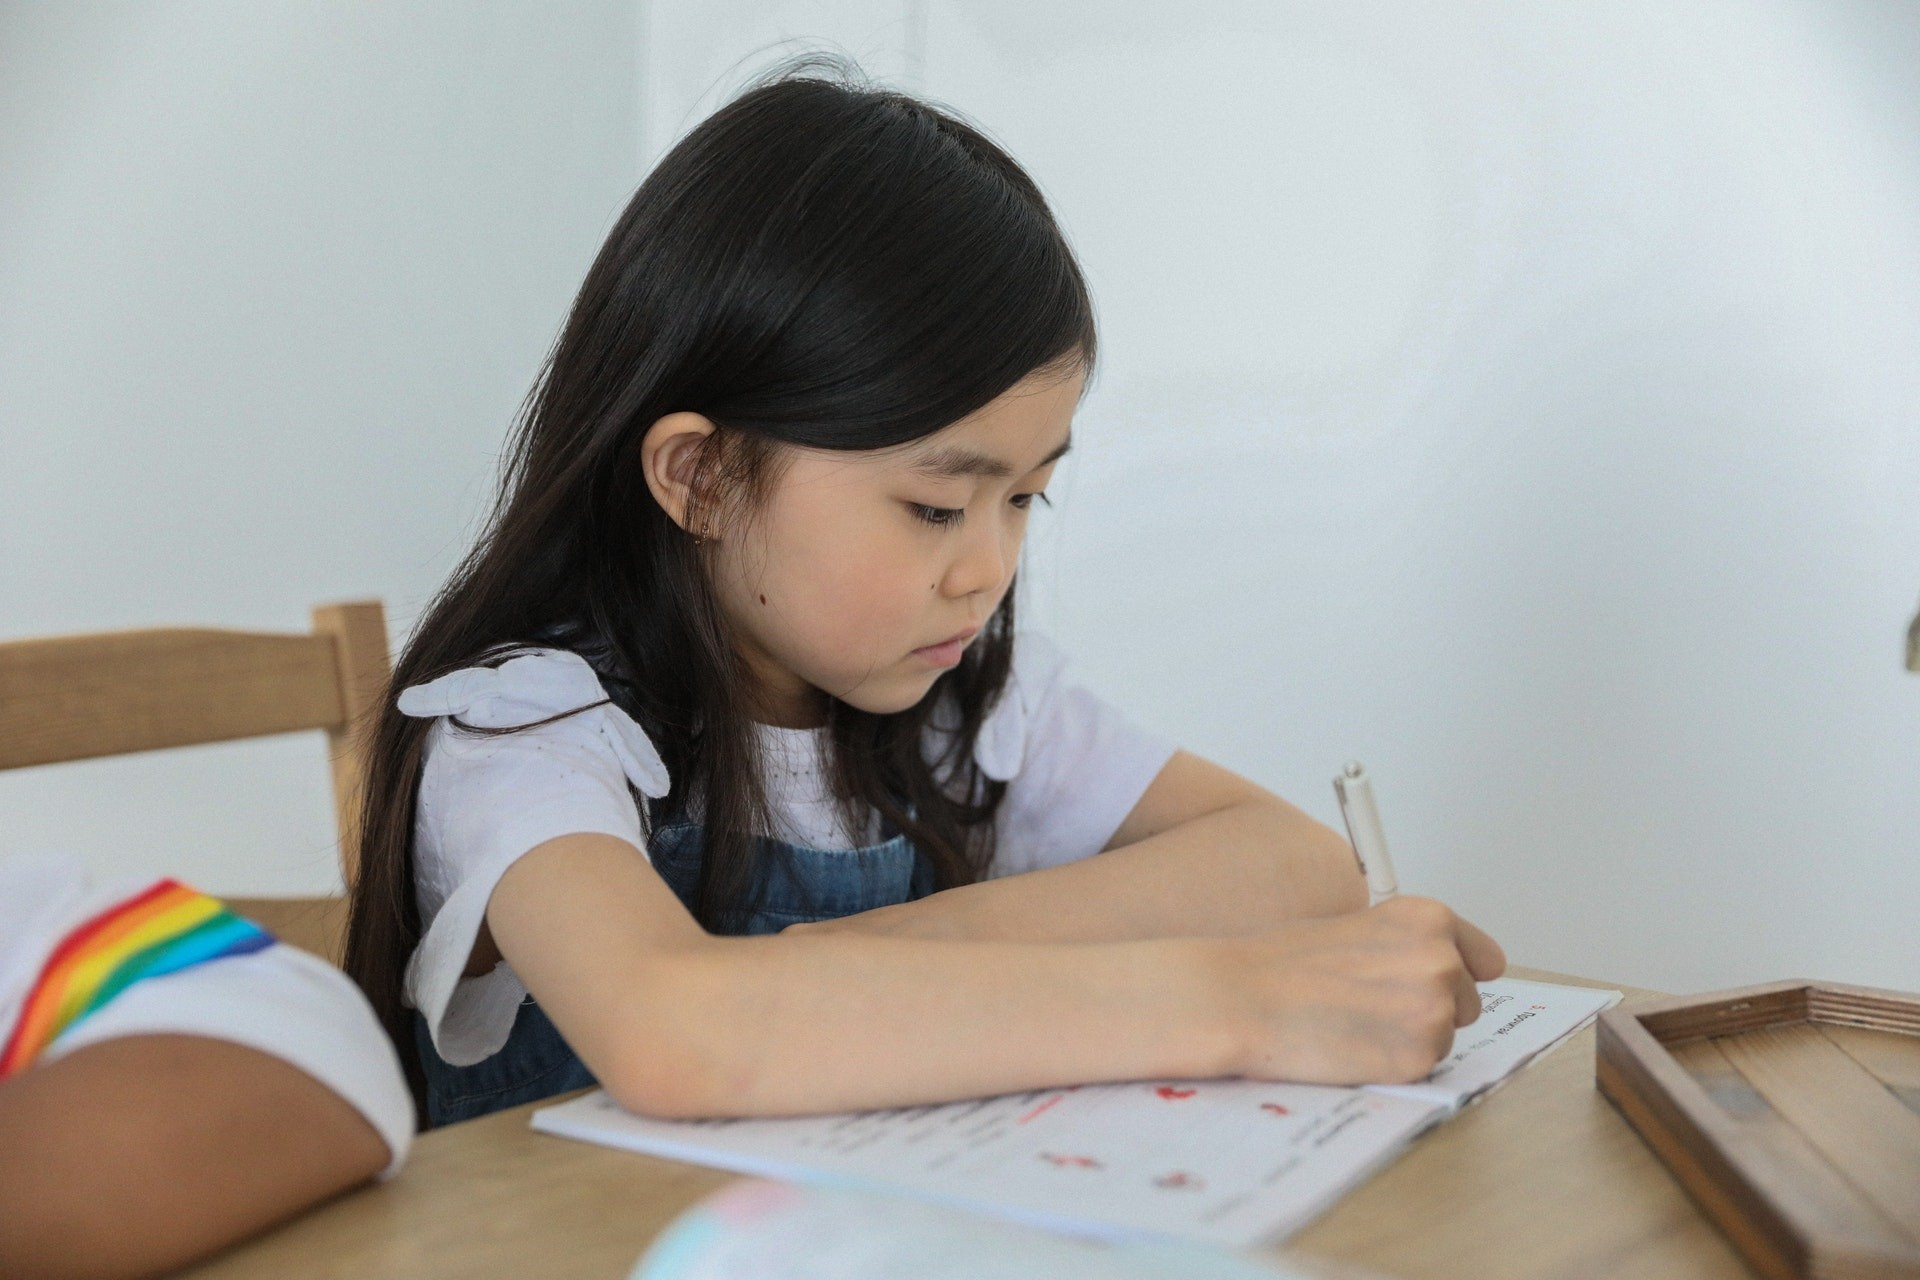 A young student works on her math homework in the classroom